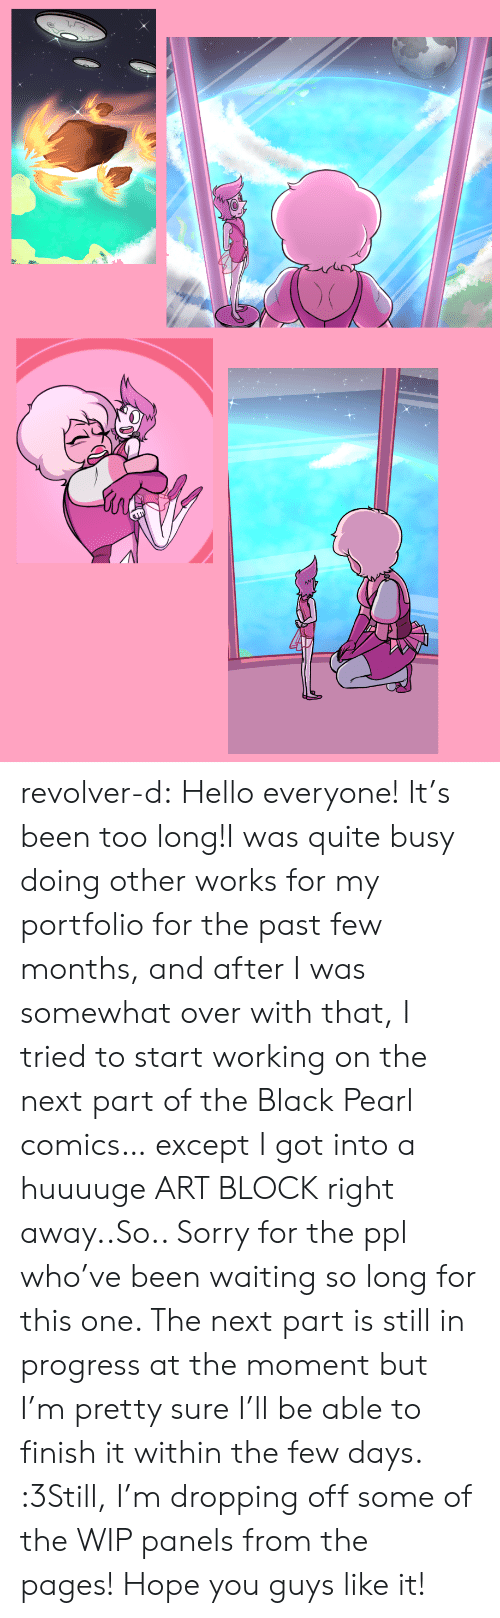 Hello, Sorry, and Tumblr: revolver-d:  Hello everyone! It's been too long!I was quite busy doing other works for my portfolio for the past few months, and after I was somewhat over with that, I tried to start working on the next part of the Black Pearl comics… except I got into a huuuuge ART BLOCK right away..So.. Sorry for the ppl who've been waiting so long for this one. The next part is still in progress at the moment but I'm pretty sure I'll be able to finish it within the few days. :3Still, I'm dropping off some of the WIP panels from the pages!Hope you guys like it!